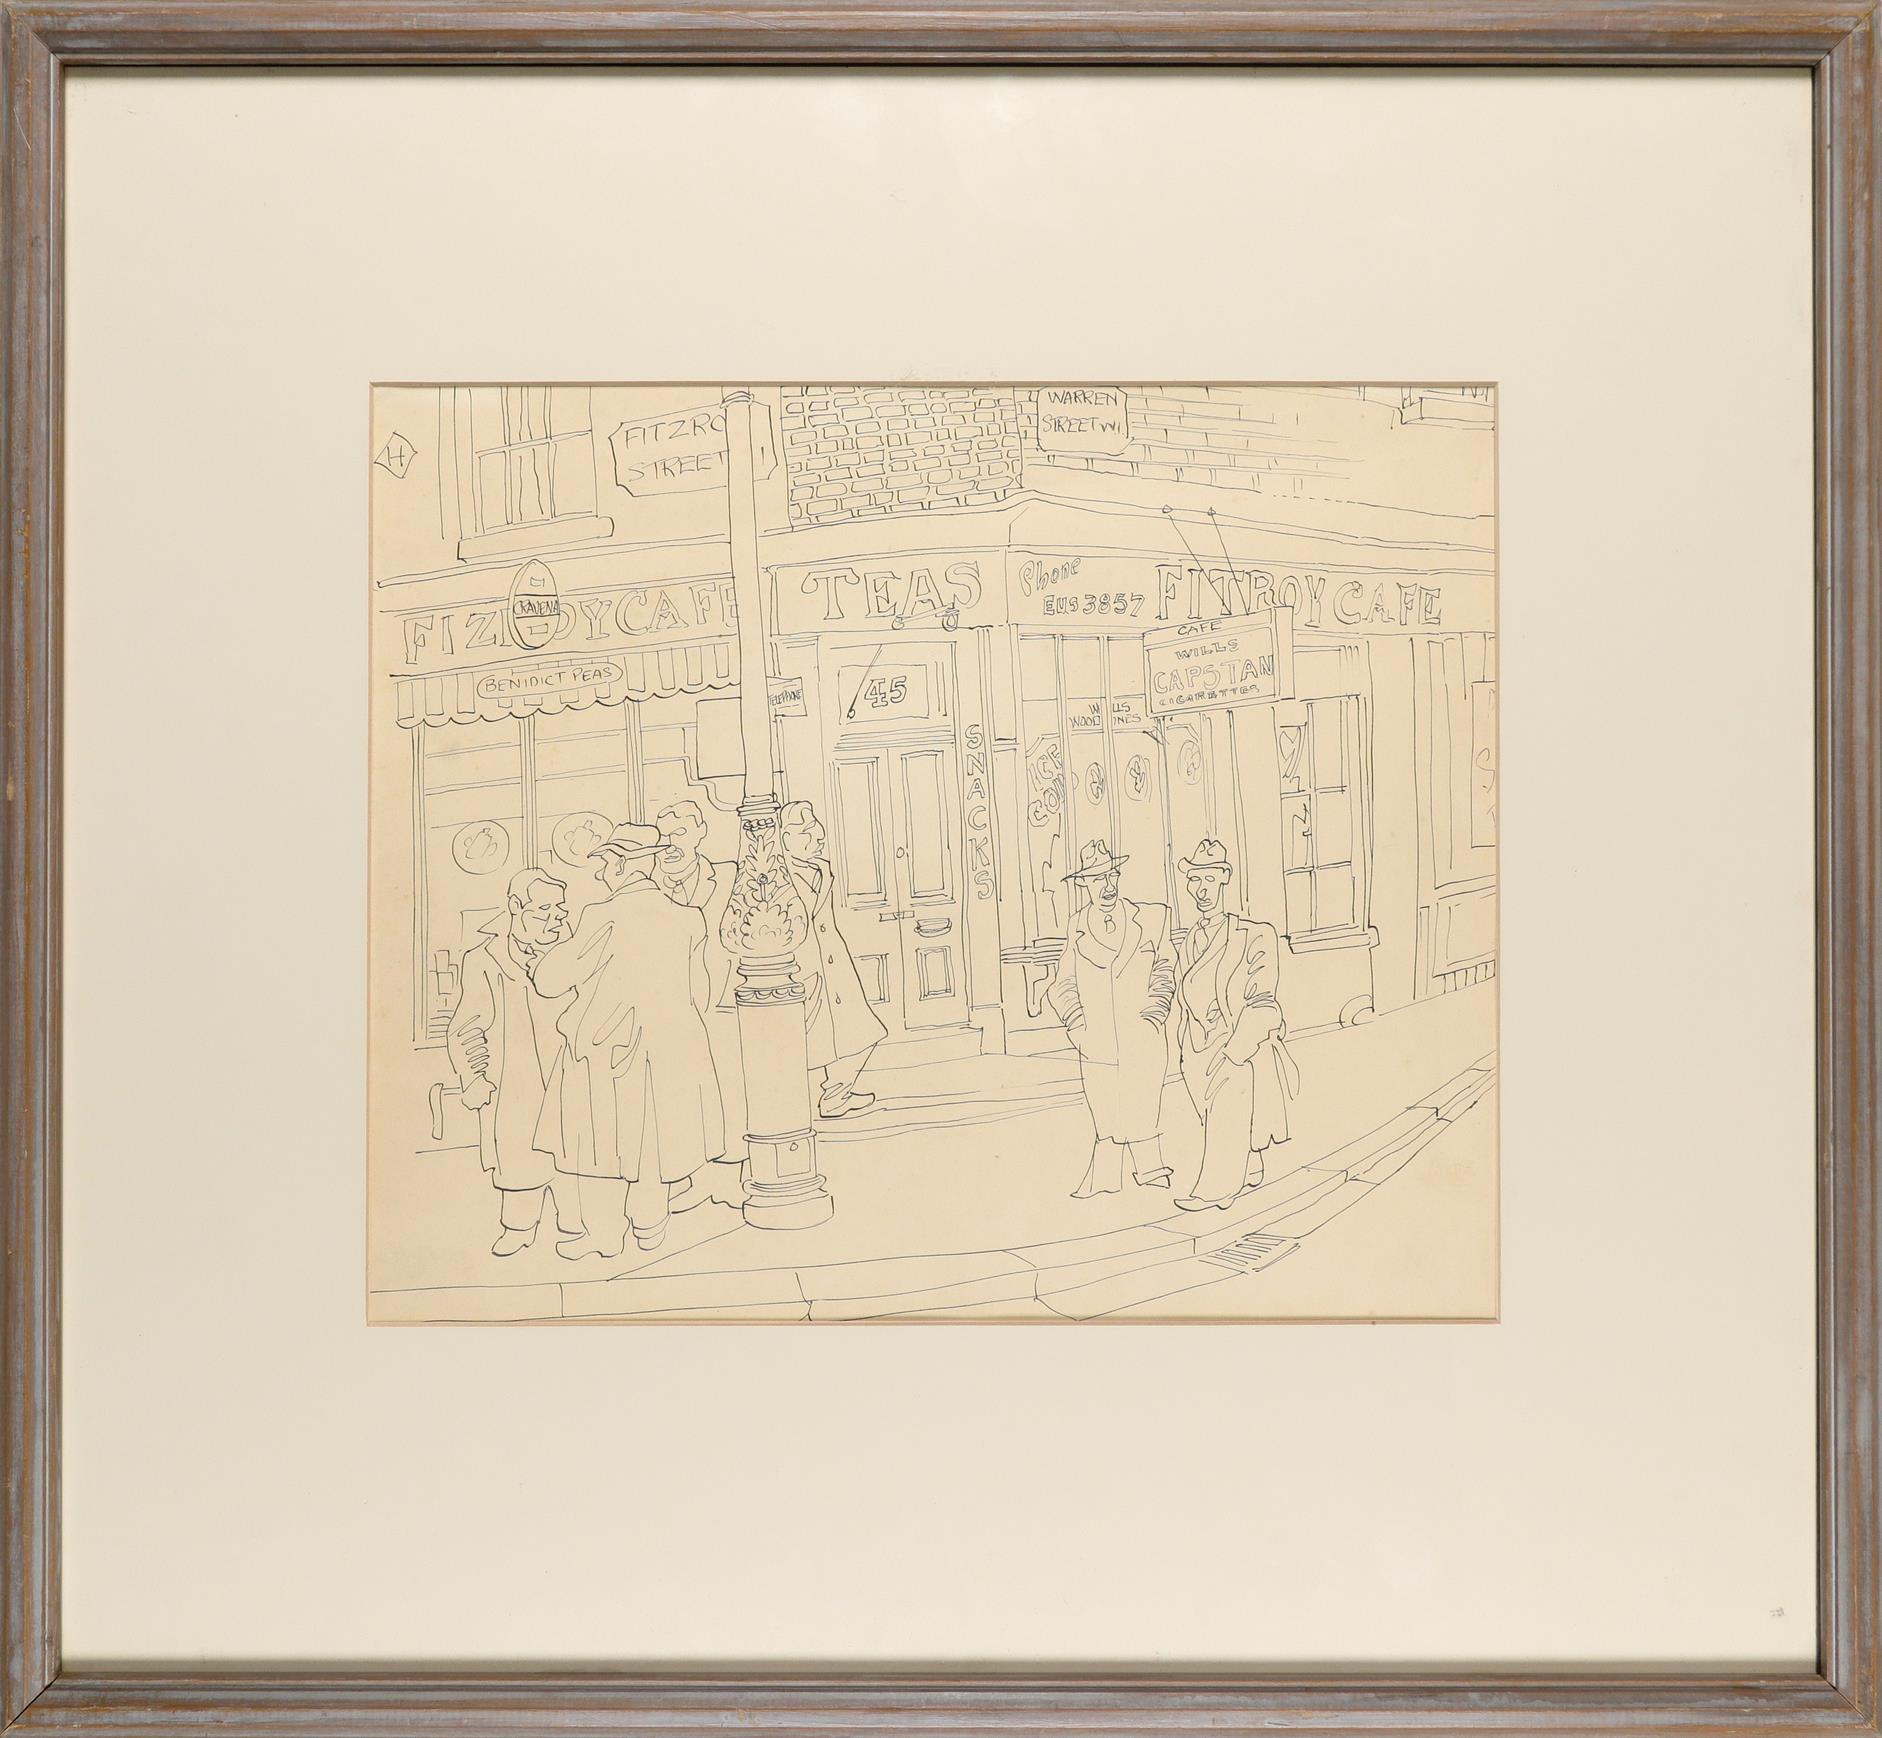 ‡Julius Stafford-Baker (1909-1988) The Fitzroy Cafe Pen and ink 30.8 x 37cm Provenance: Sally Hunter - Image 2 of 3